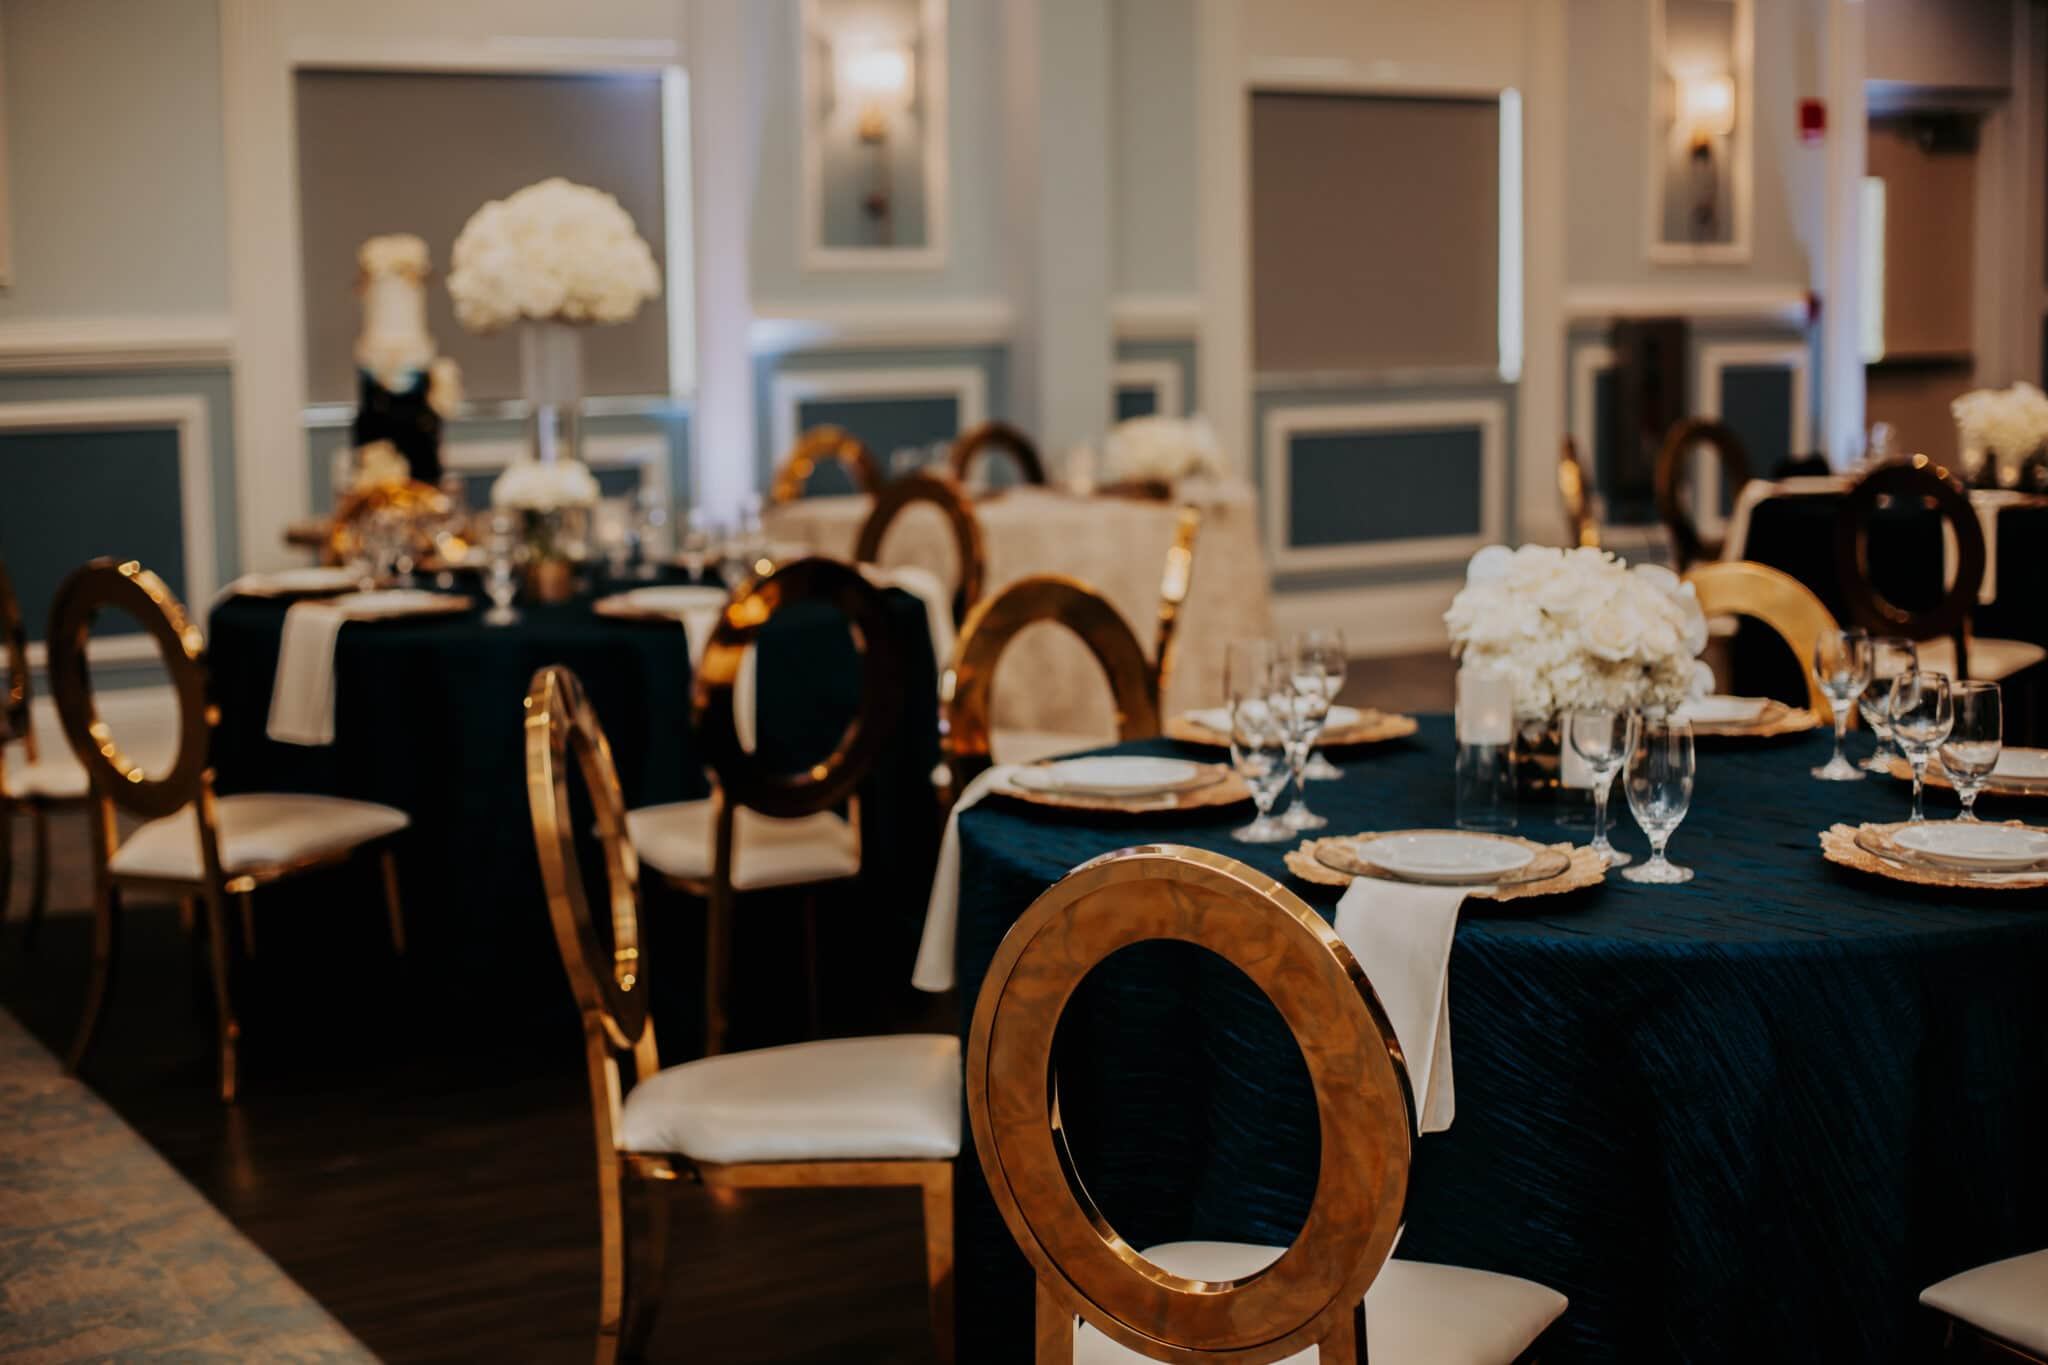 navy & gold table setting